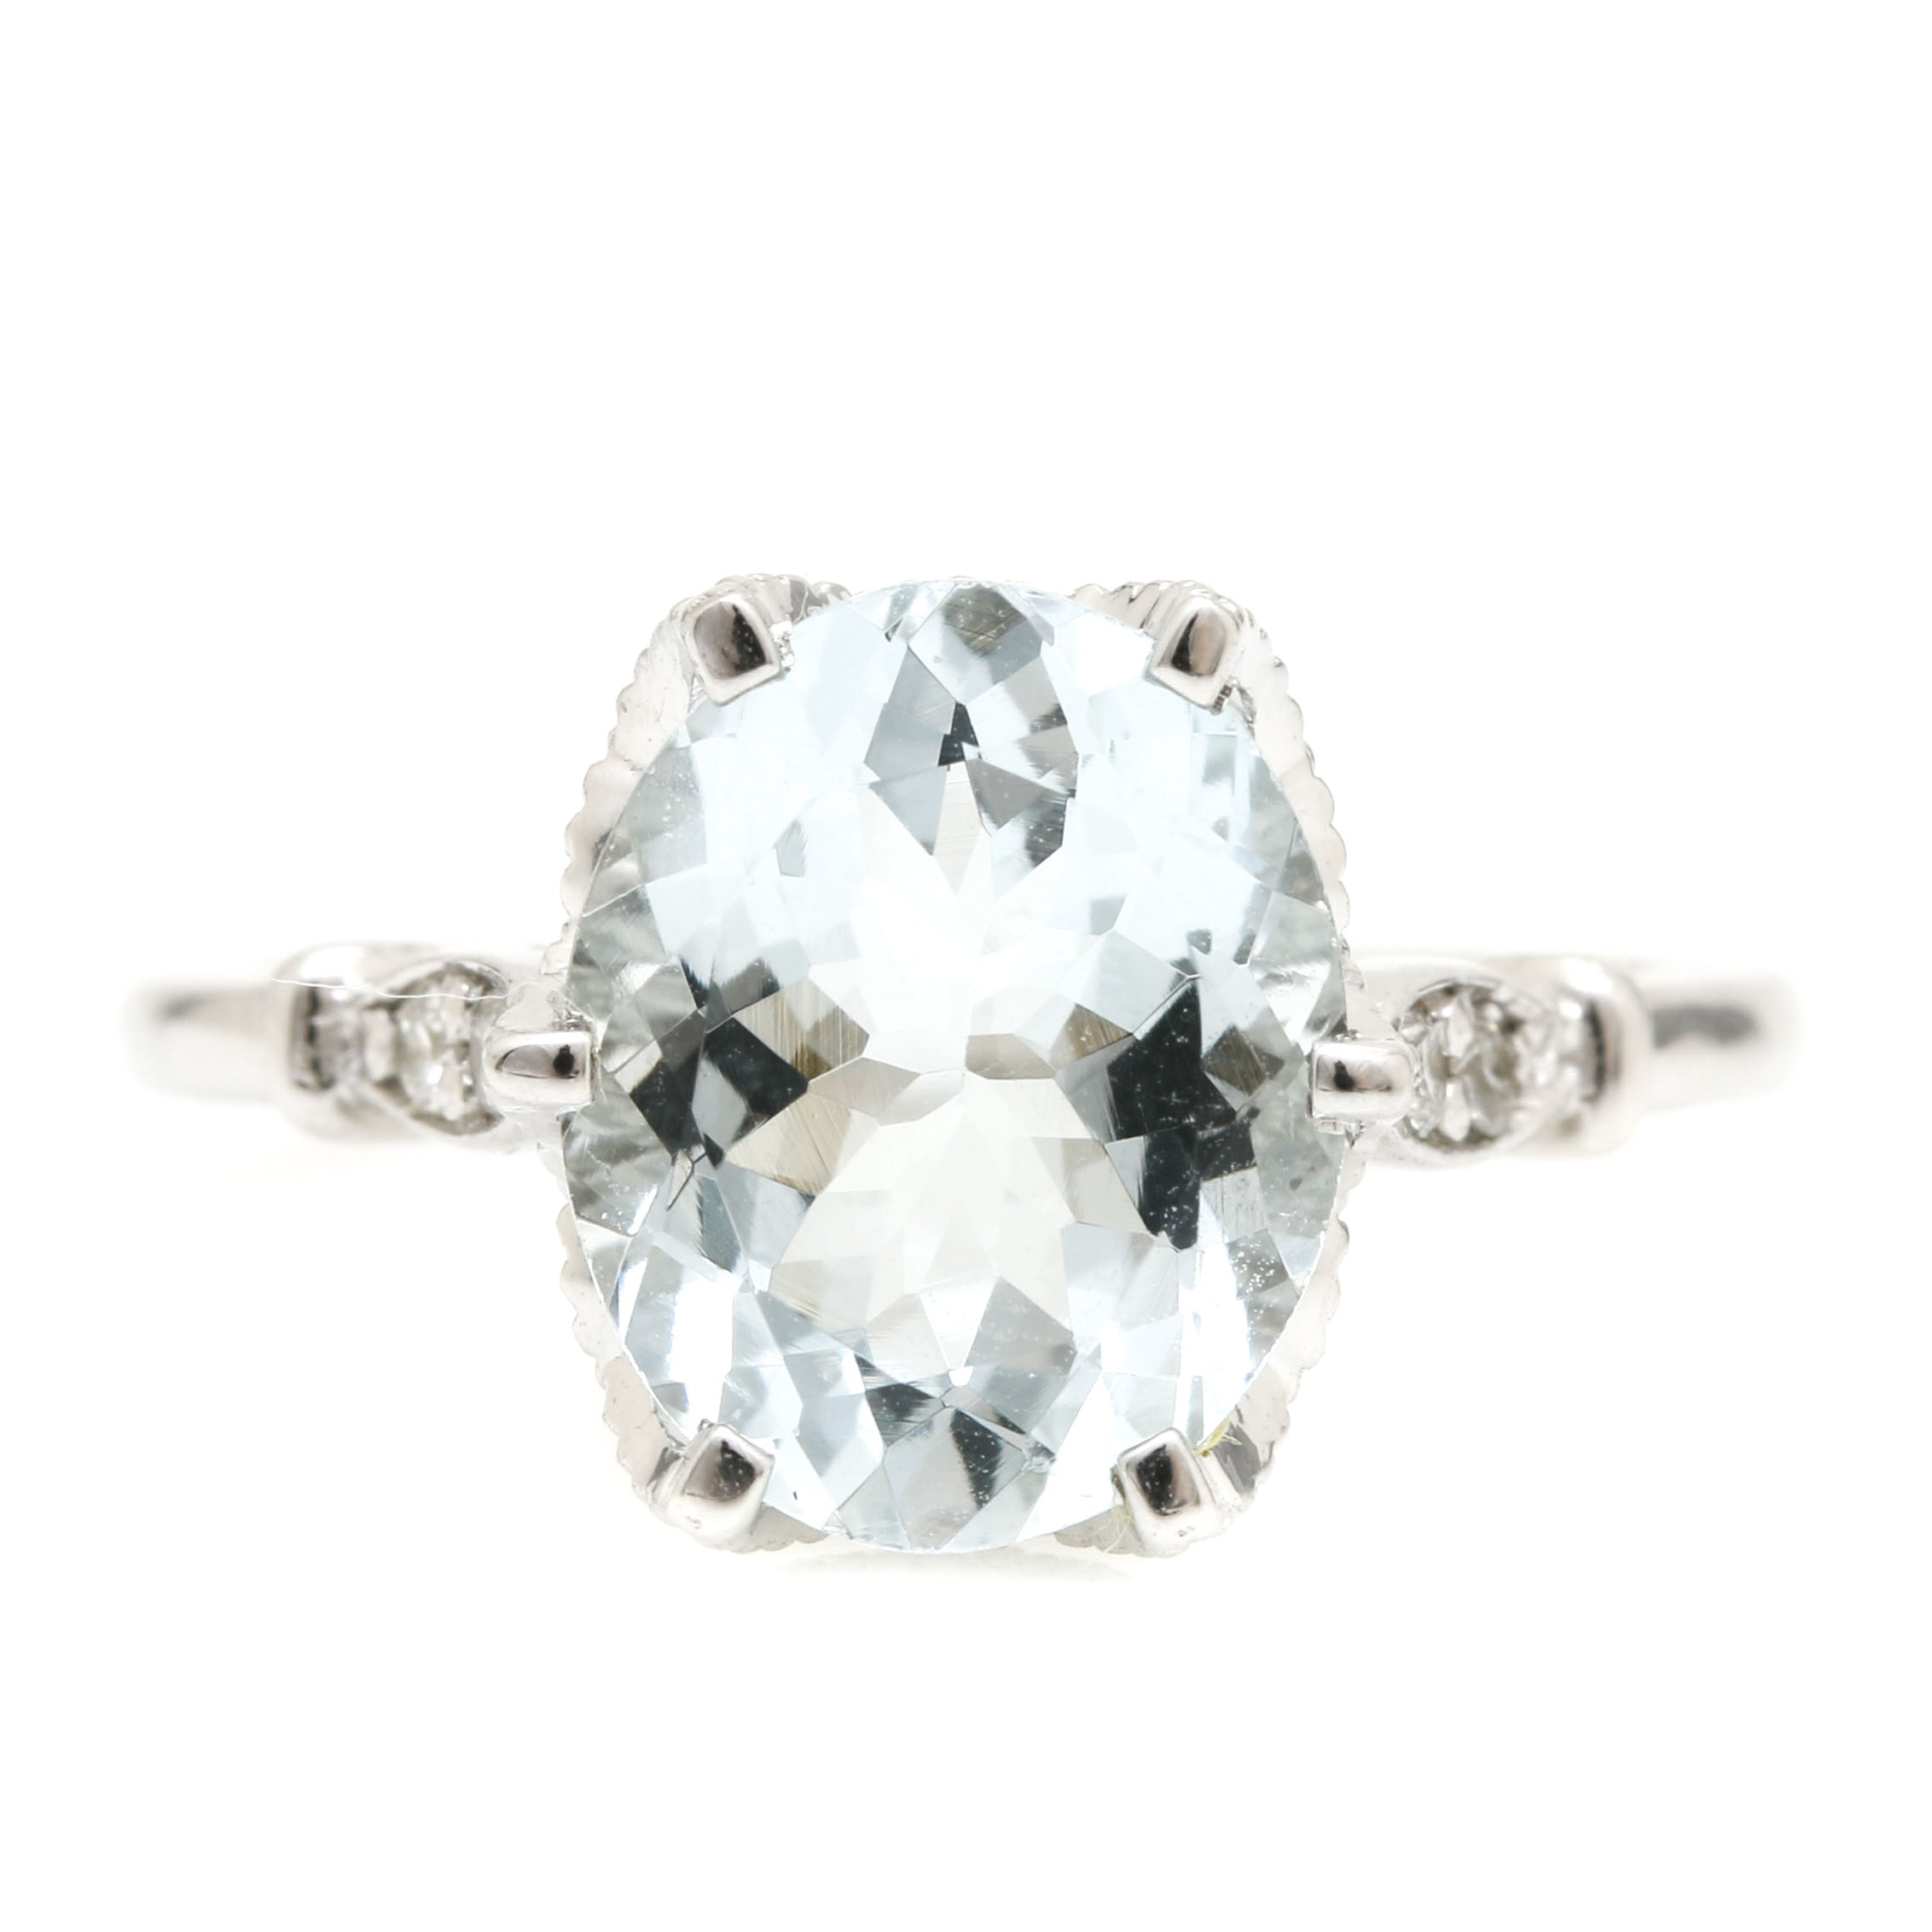 14K White Gold 2.98 CTS Aquamarine and Diamond Ring